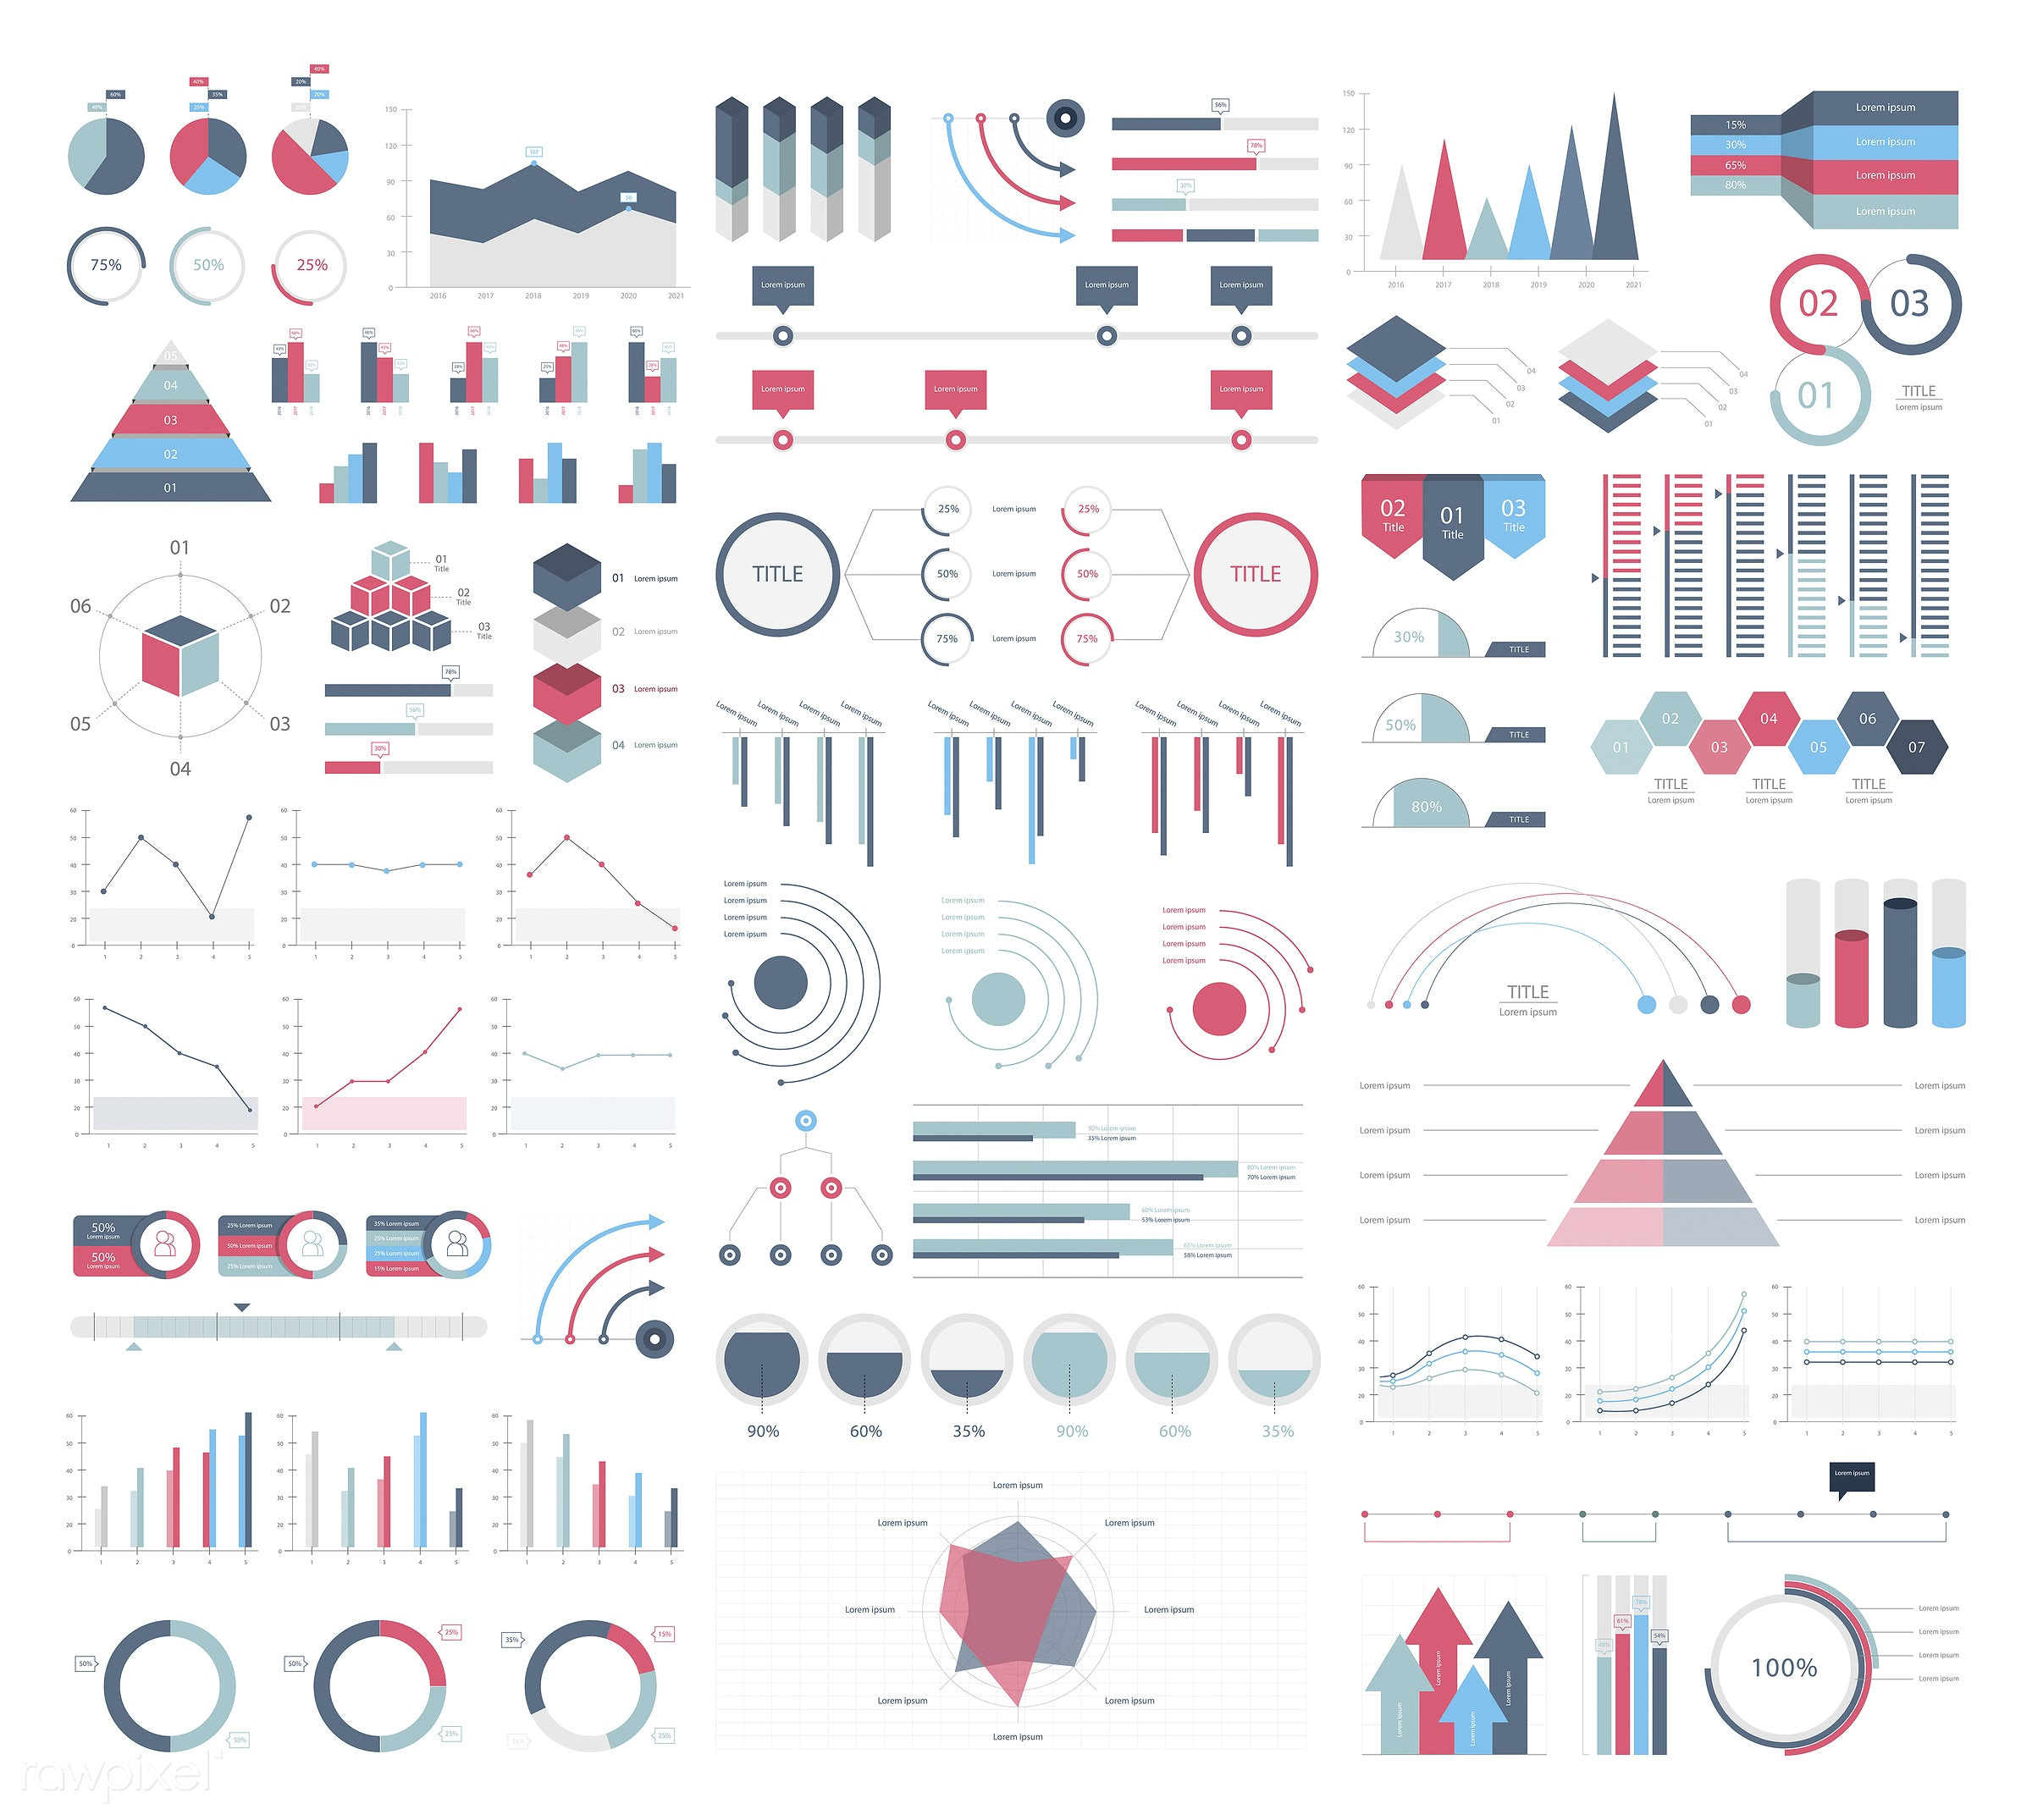 Set elements of infographic - infographic, business, chart, arrow, marketing, report, design, icon, graph, timeline, vector...